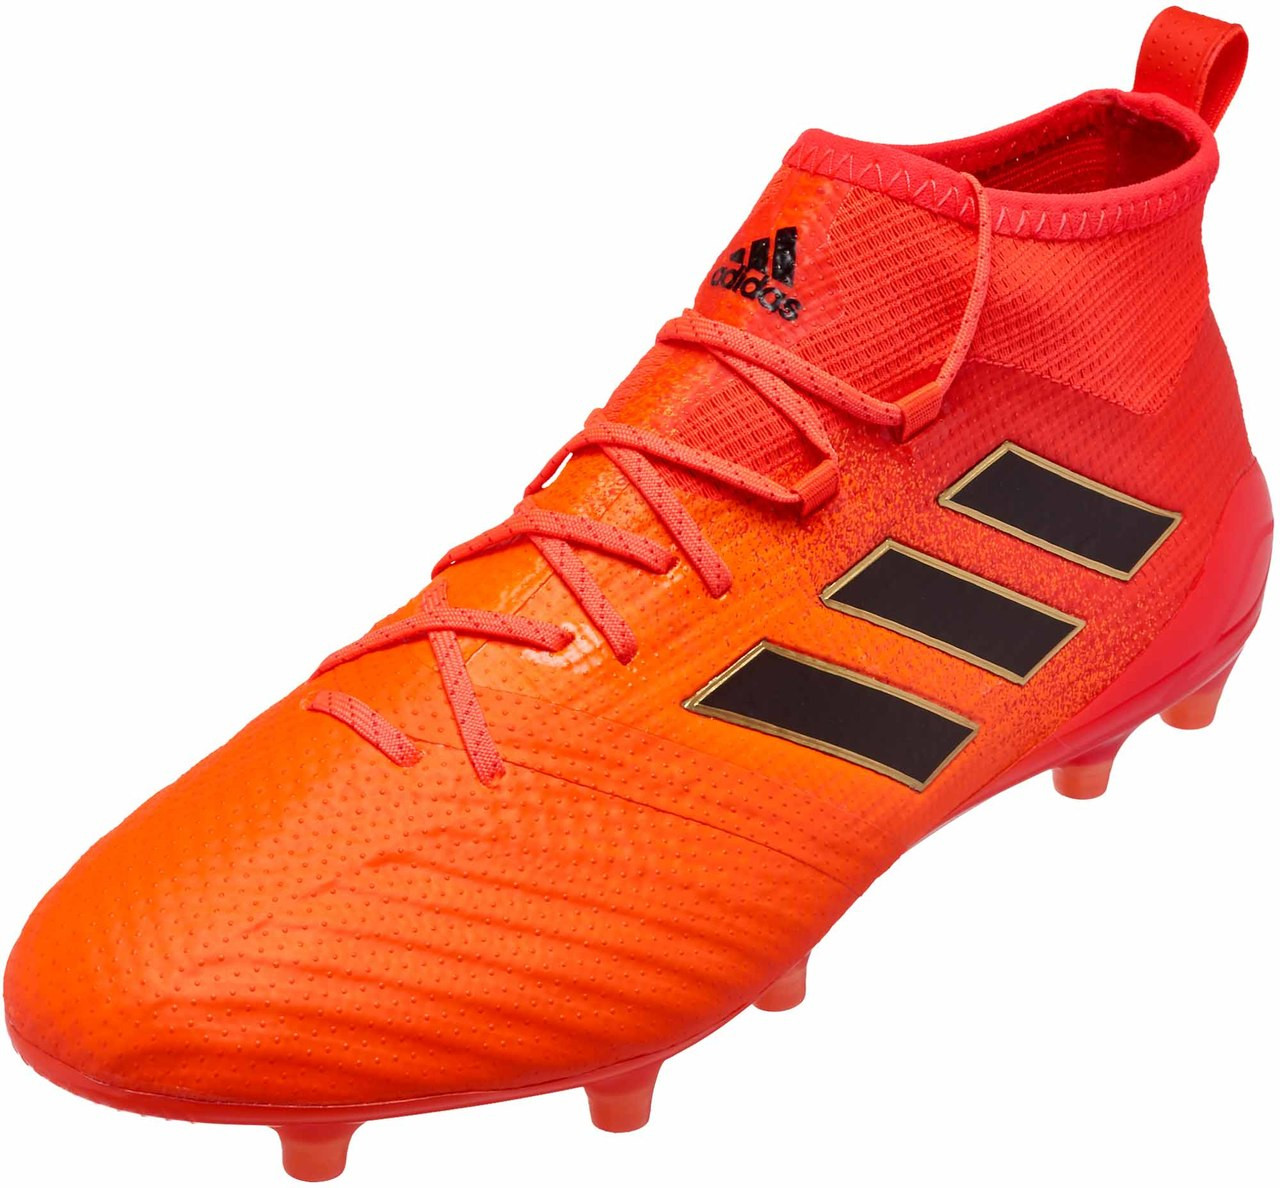 4346eb3f5773 Adidas Ace 17.1 FG - Solar Orange/Core Black/Solar Red (51618) - ohp soccer